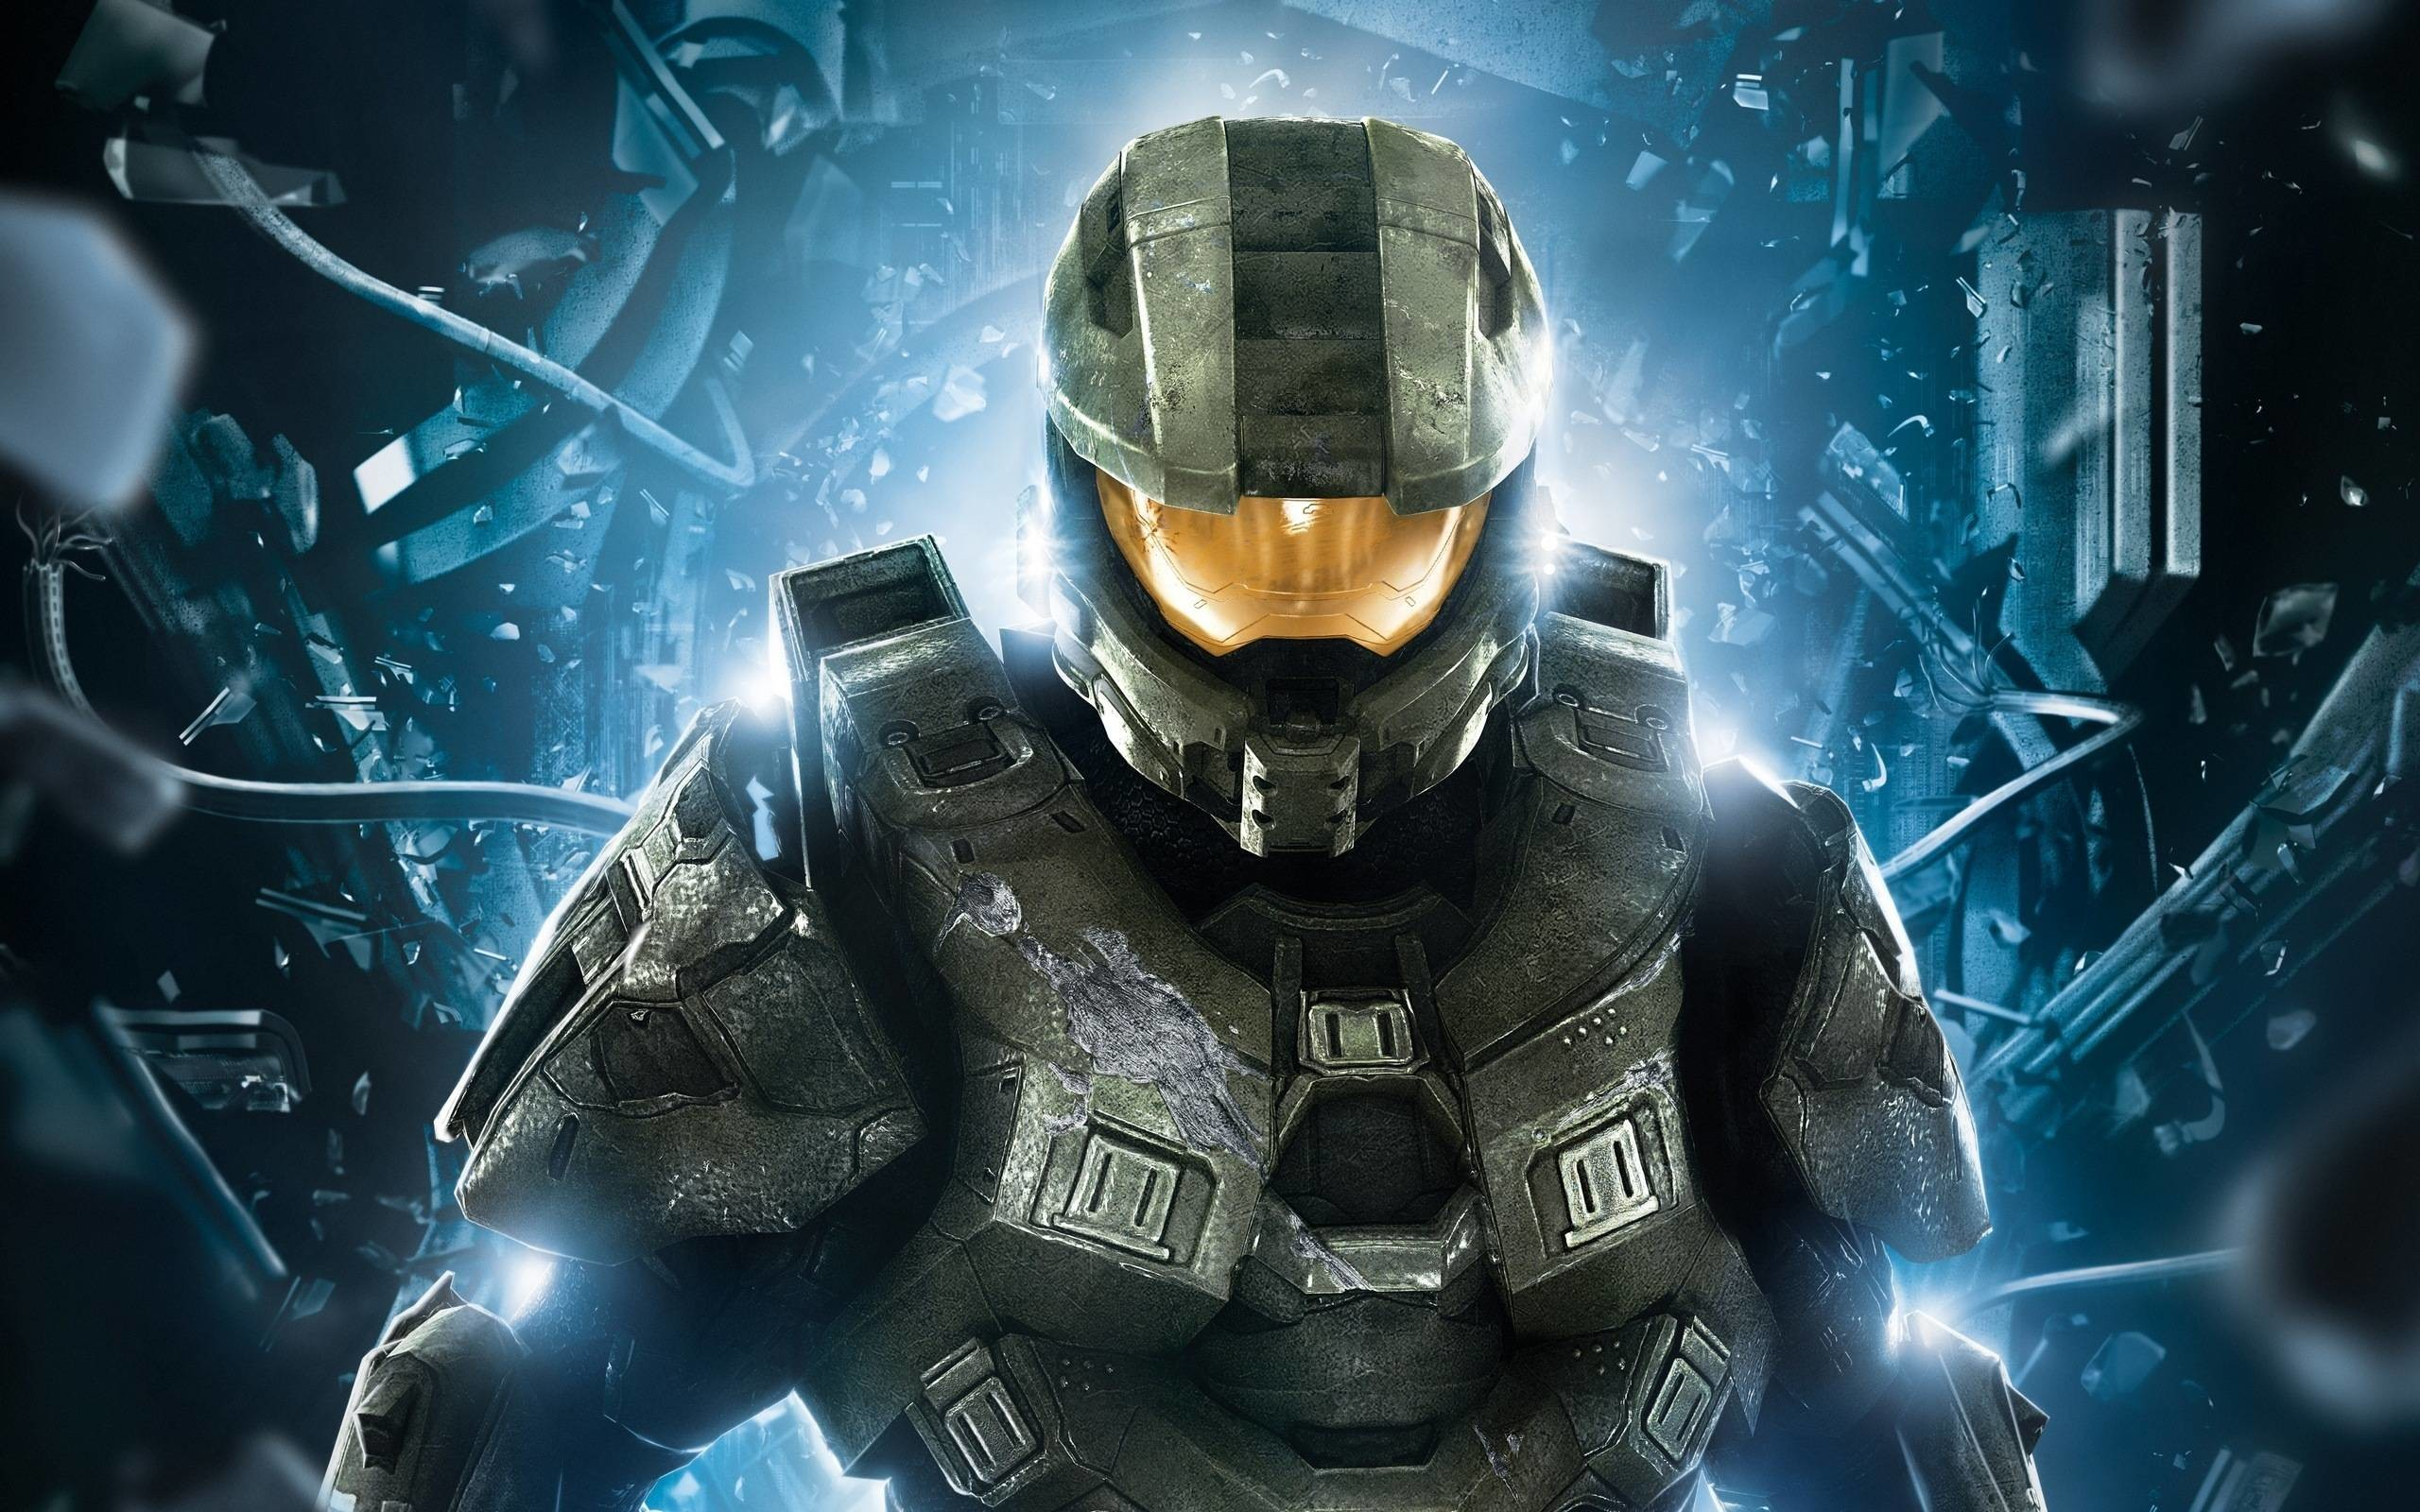 2560x1600 Download Halo 4 Xbox Game Wallpaper HD (2983) Full Size .